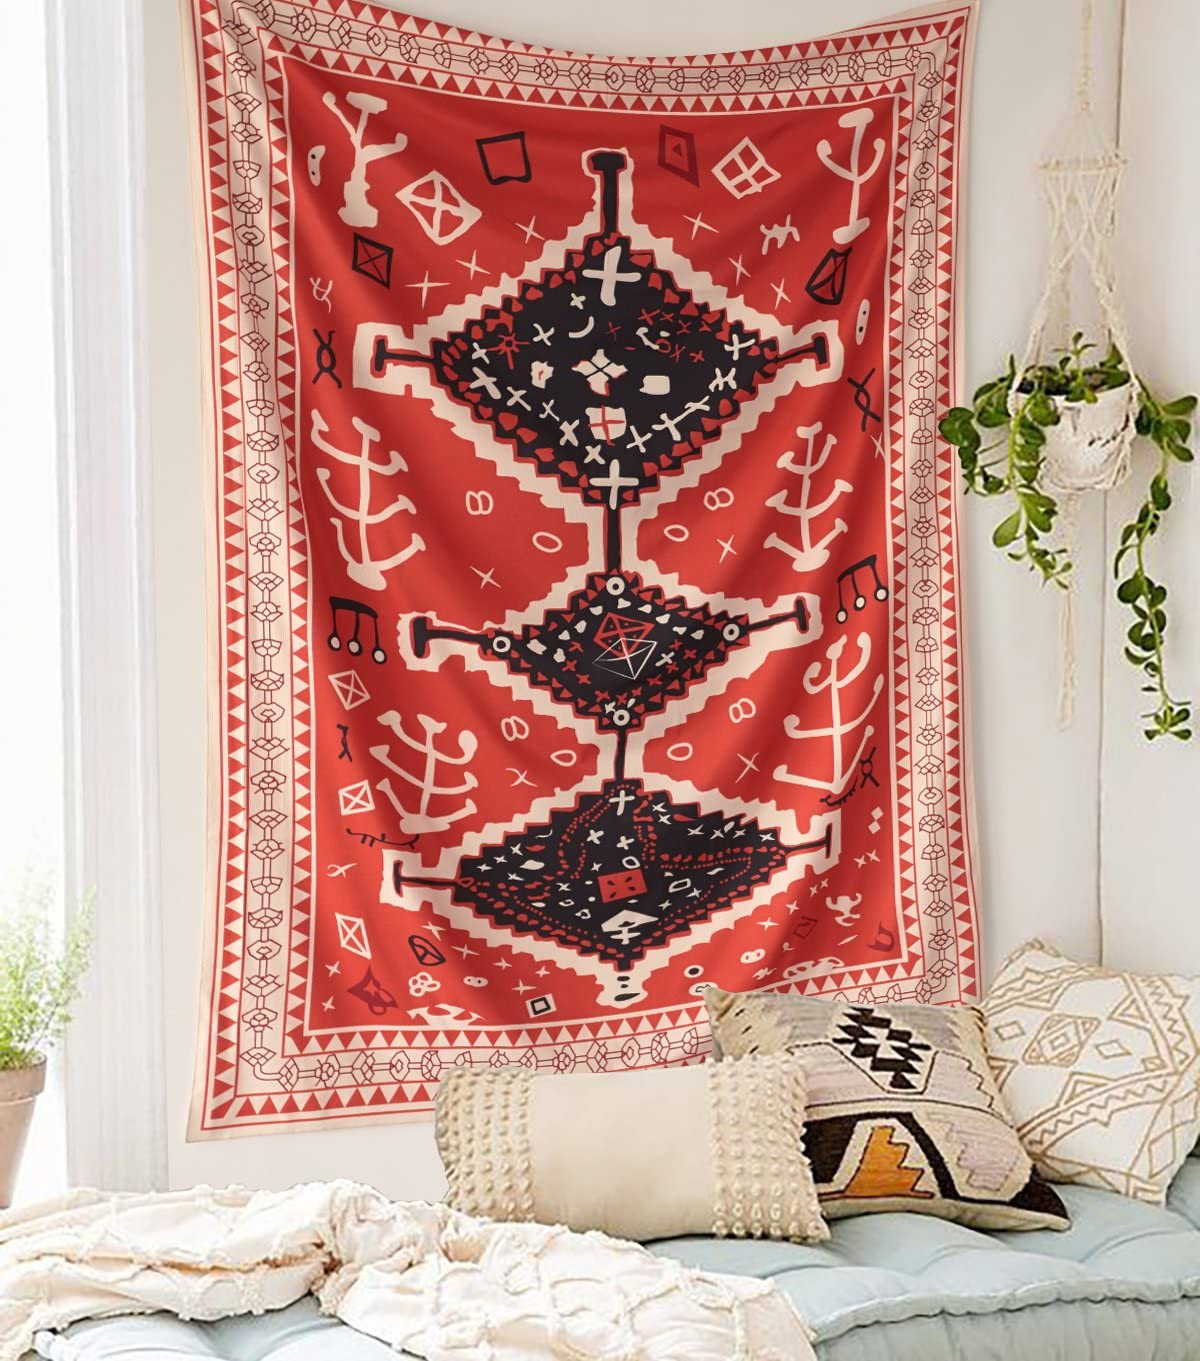 "Morocco Inspired Wall Tapestry Fabric Wallpaper Home Decor,60""x 80"",Twin Size"